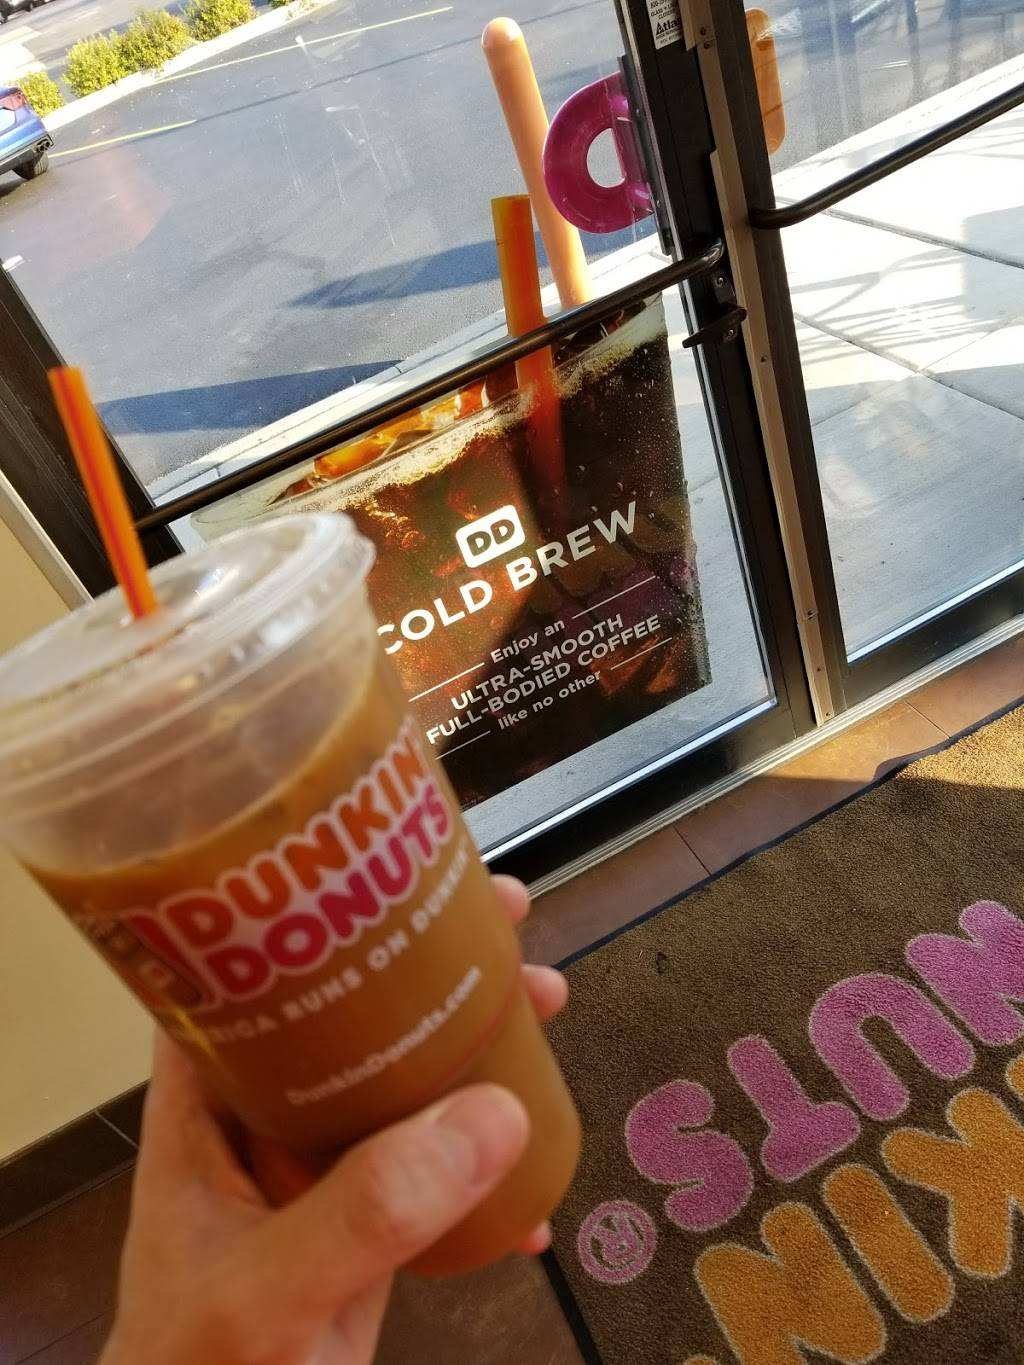 Dunkin Donuts   cafe   1818 W Northwest Hwy, Arlington Heights, IL 60004, USA   8472579974 OR +1 847-257-9974